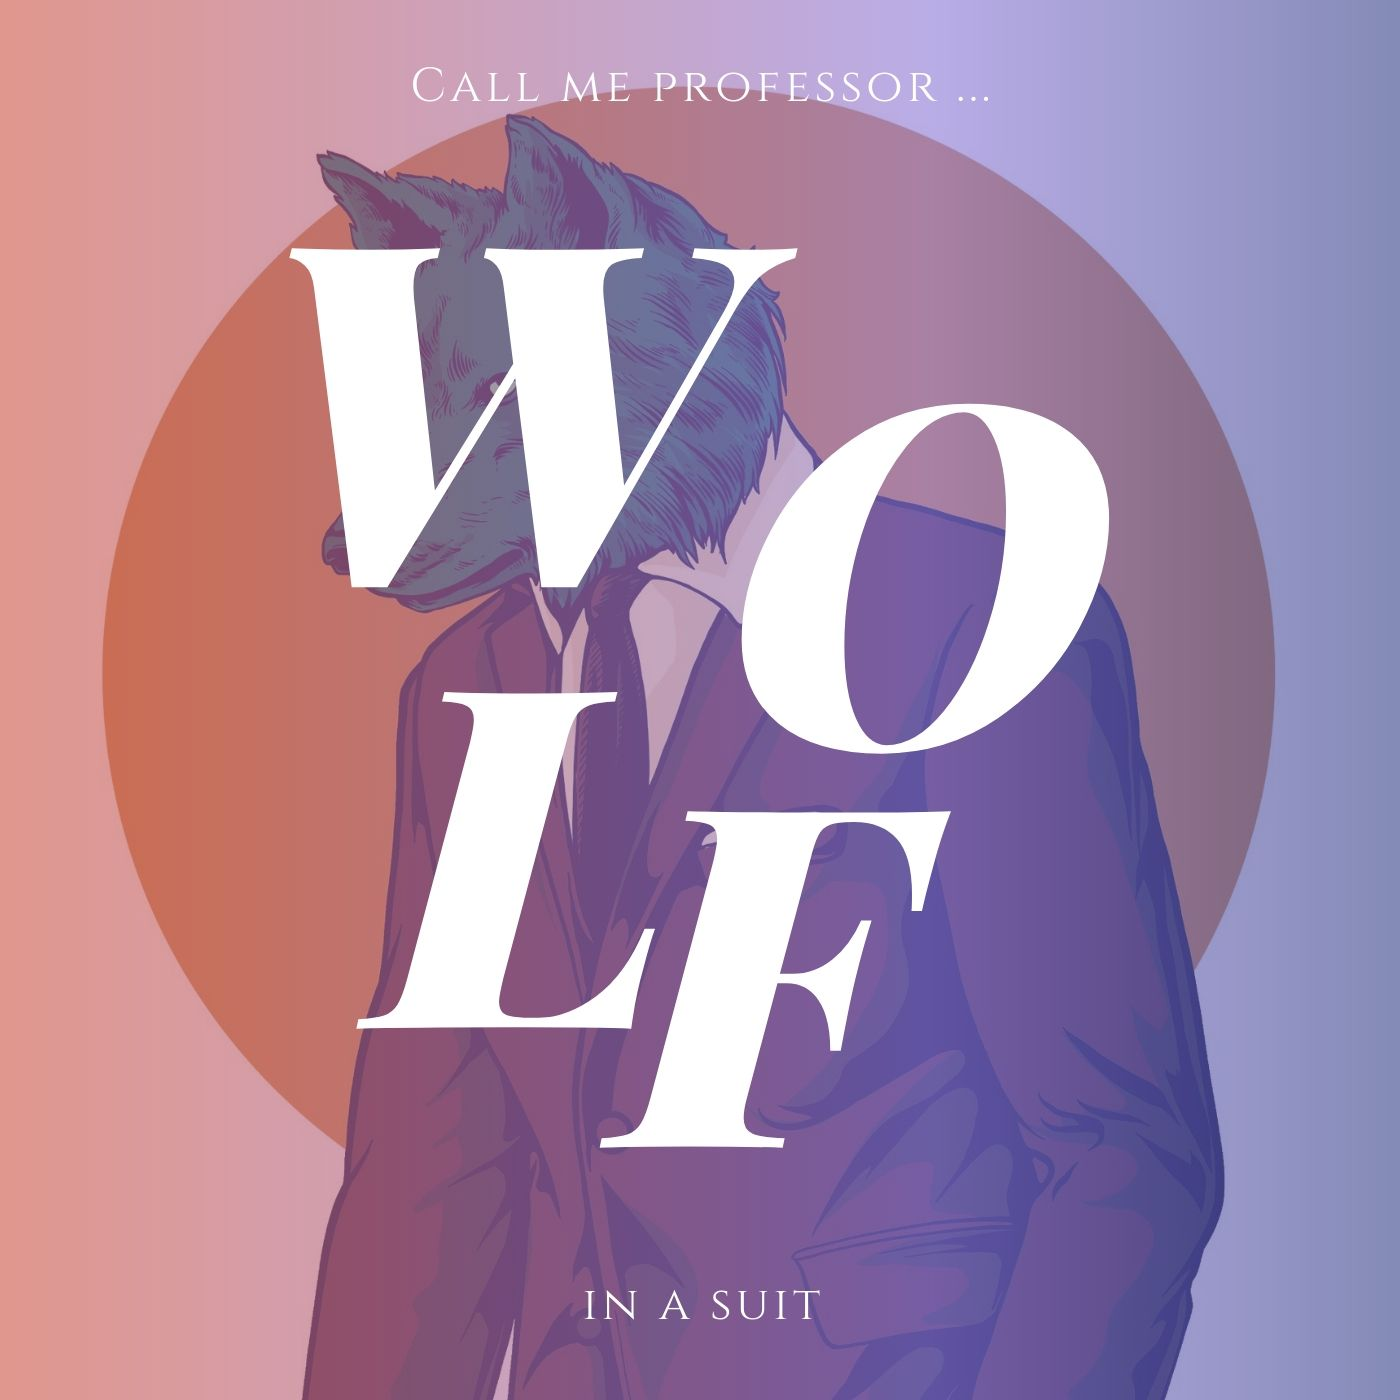 call me professor wolf in a suit - indie music - new music - indie pop - indie rock - indie folk - music blog - wolf in a suit - wolfinasuit - wolf in a suit blog